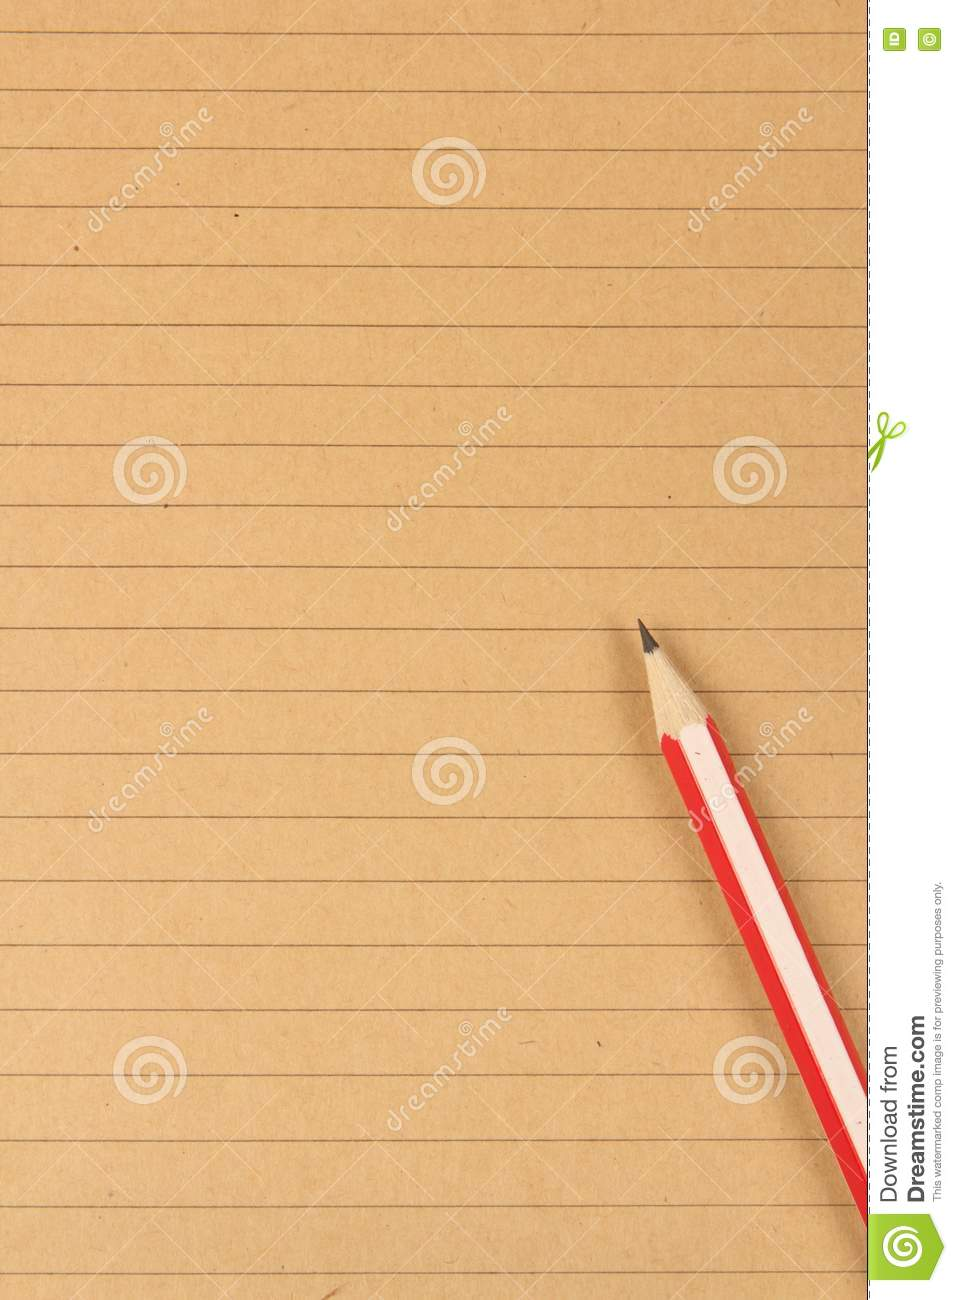 Writing paper background